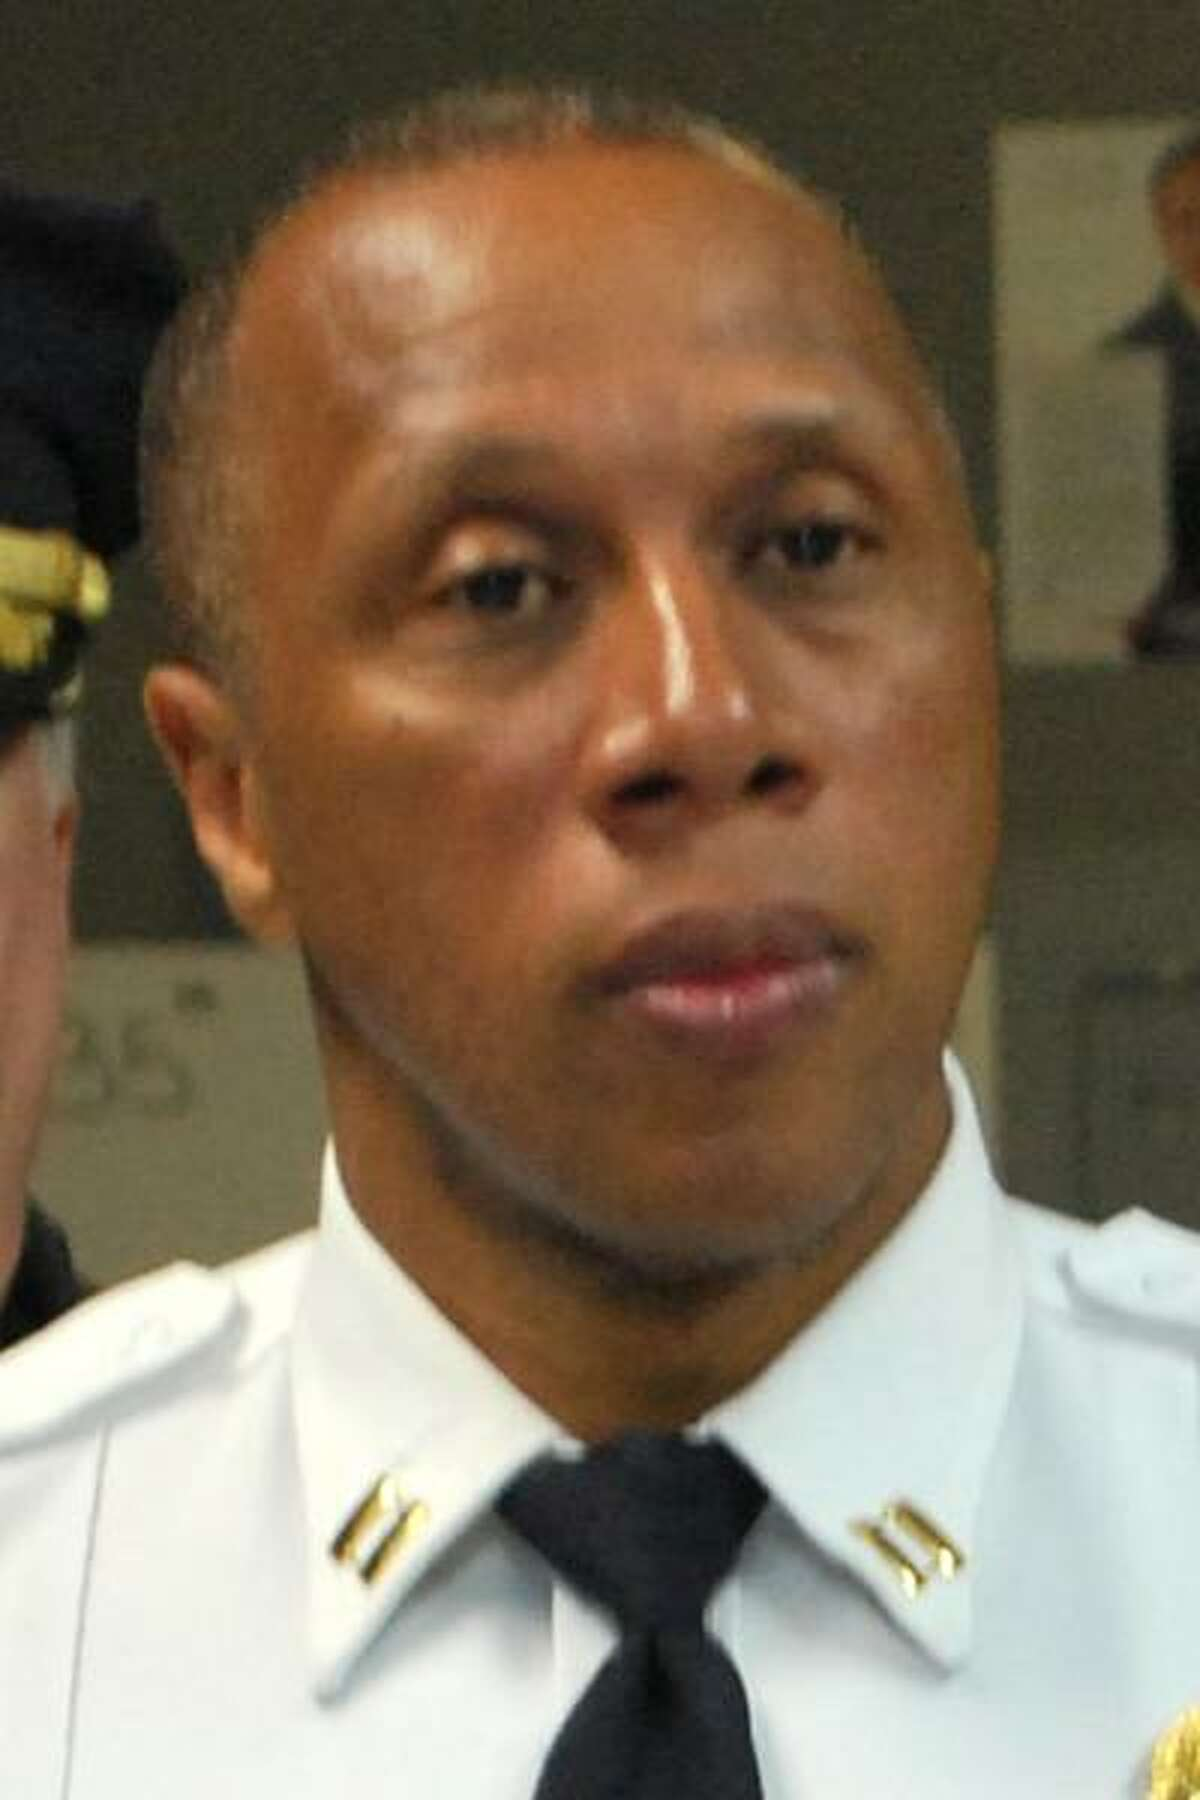 Bridgeport Police Captain Roderick Porter is one of three finalists Mayor Ganim will evaluate for the permanent position of Bridgeport Police Chief.